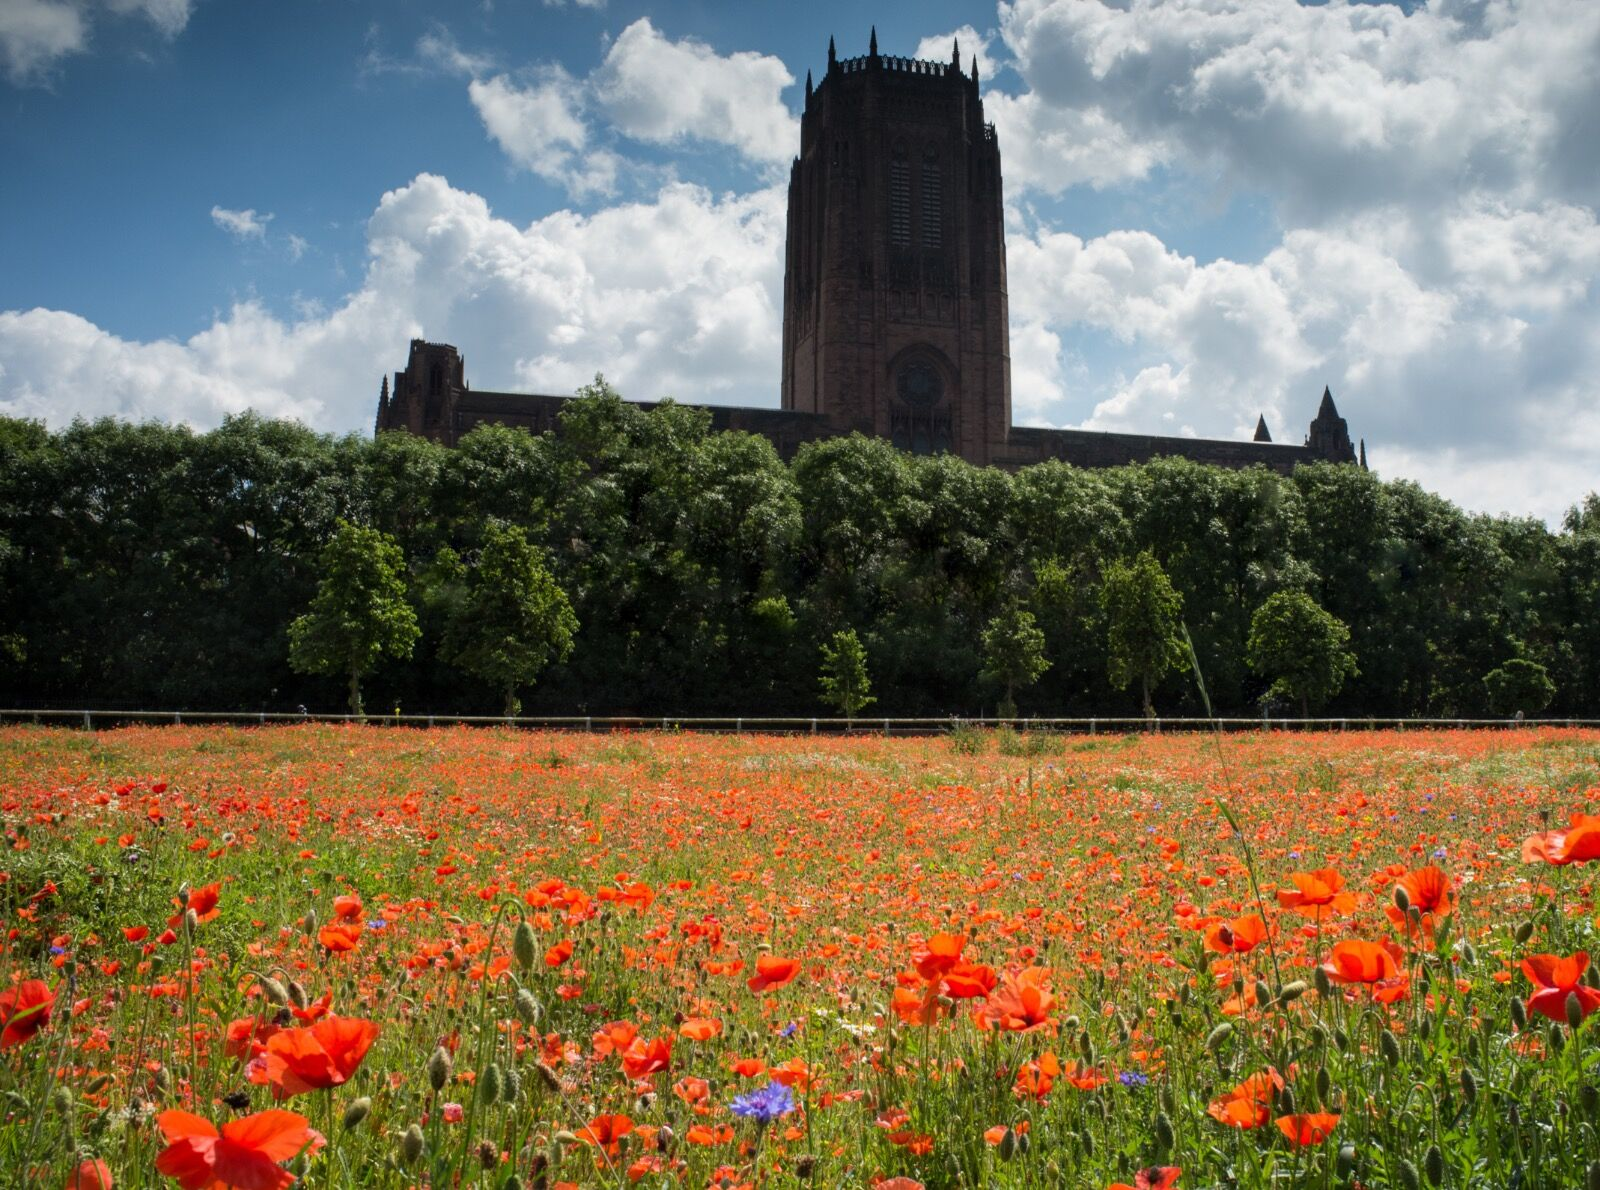 Liverpool Anglican Cathedral from the poppy fields